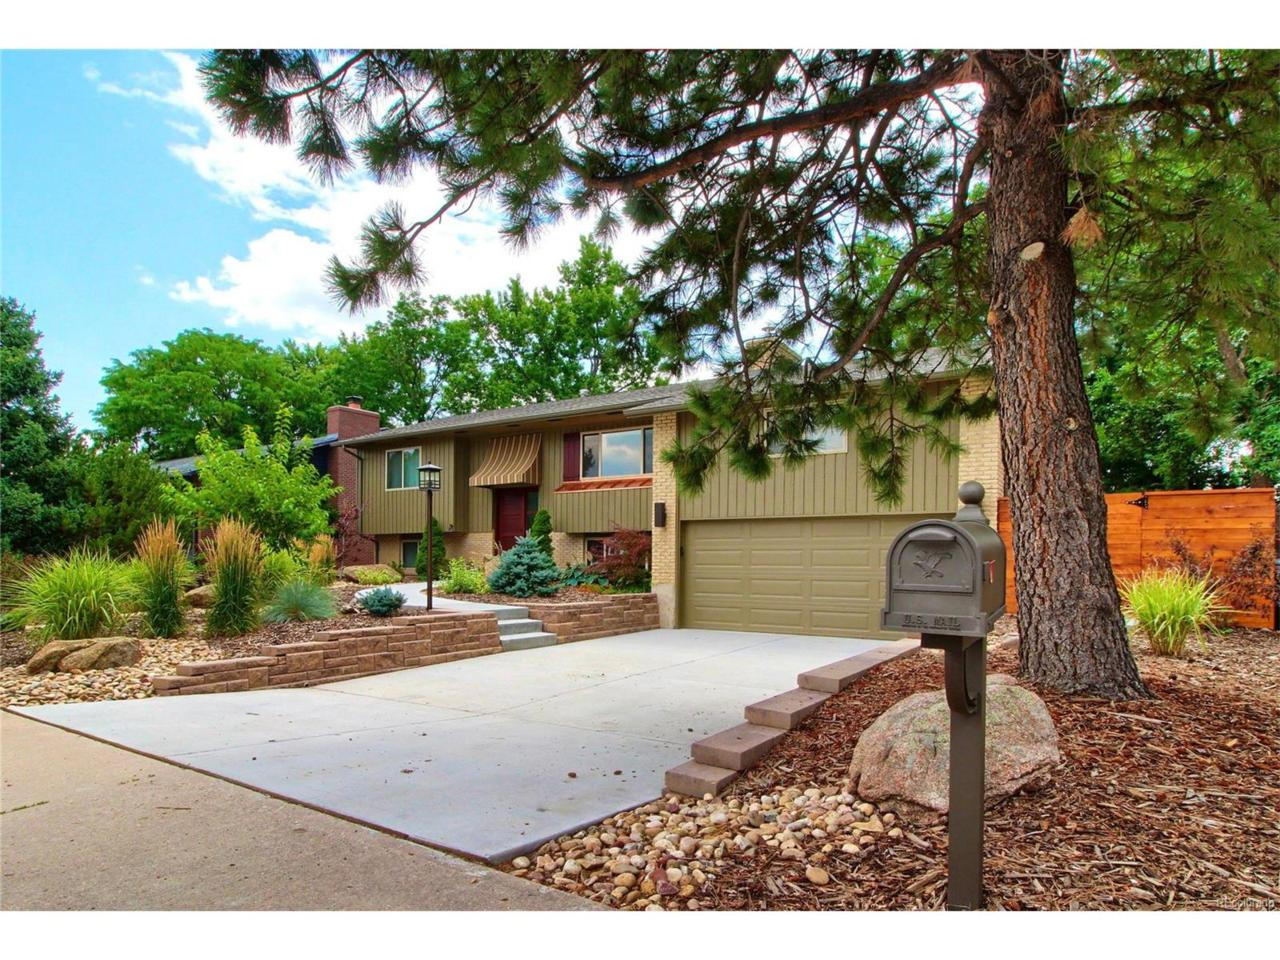 8994 W Asbury Avenue, Lakewood, CO 80227 (MLS #9118389) :: 8z Real Estate